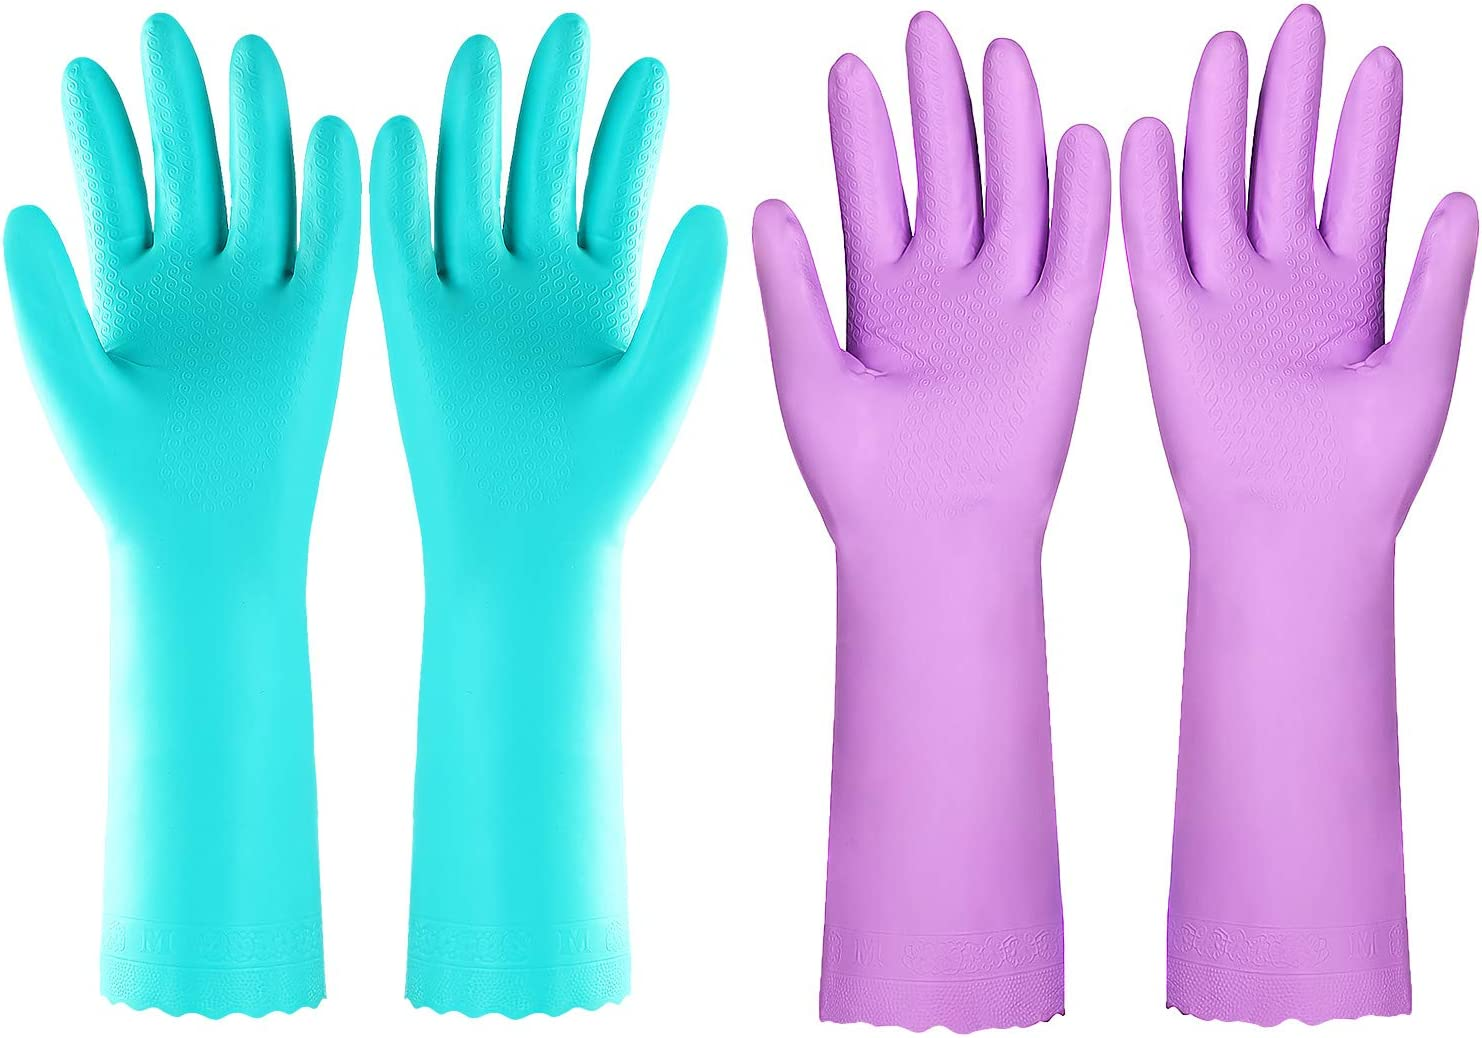 Elgood Dishwashing Cleaning Gloves with Latex Free, Cotton Lining,Vinyl Kitchen Gloves 2 Pairs (Purple+Blue, Medium)